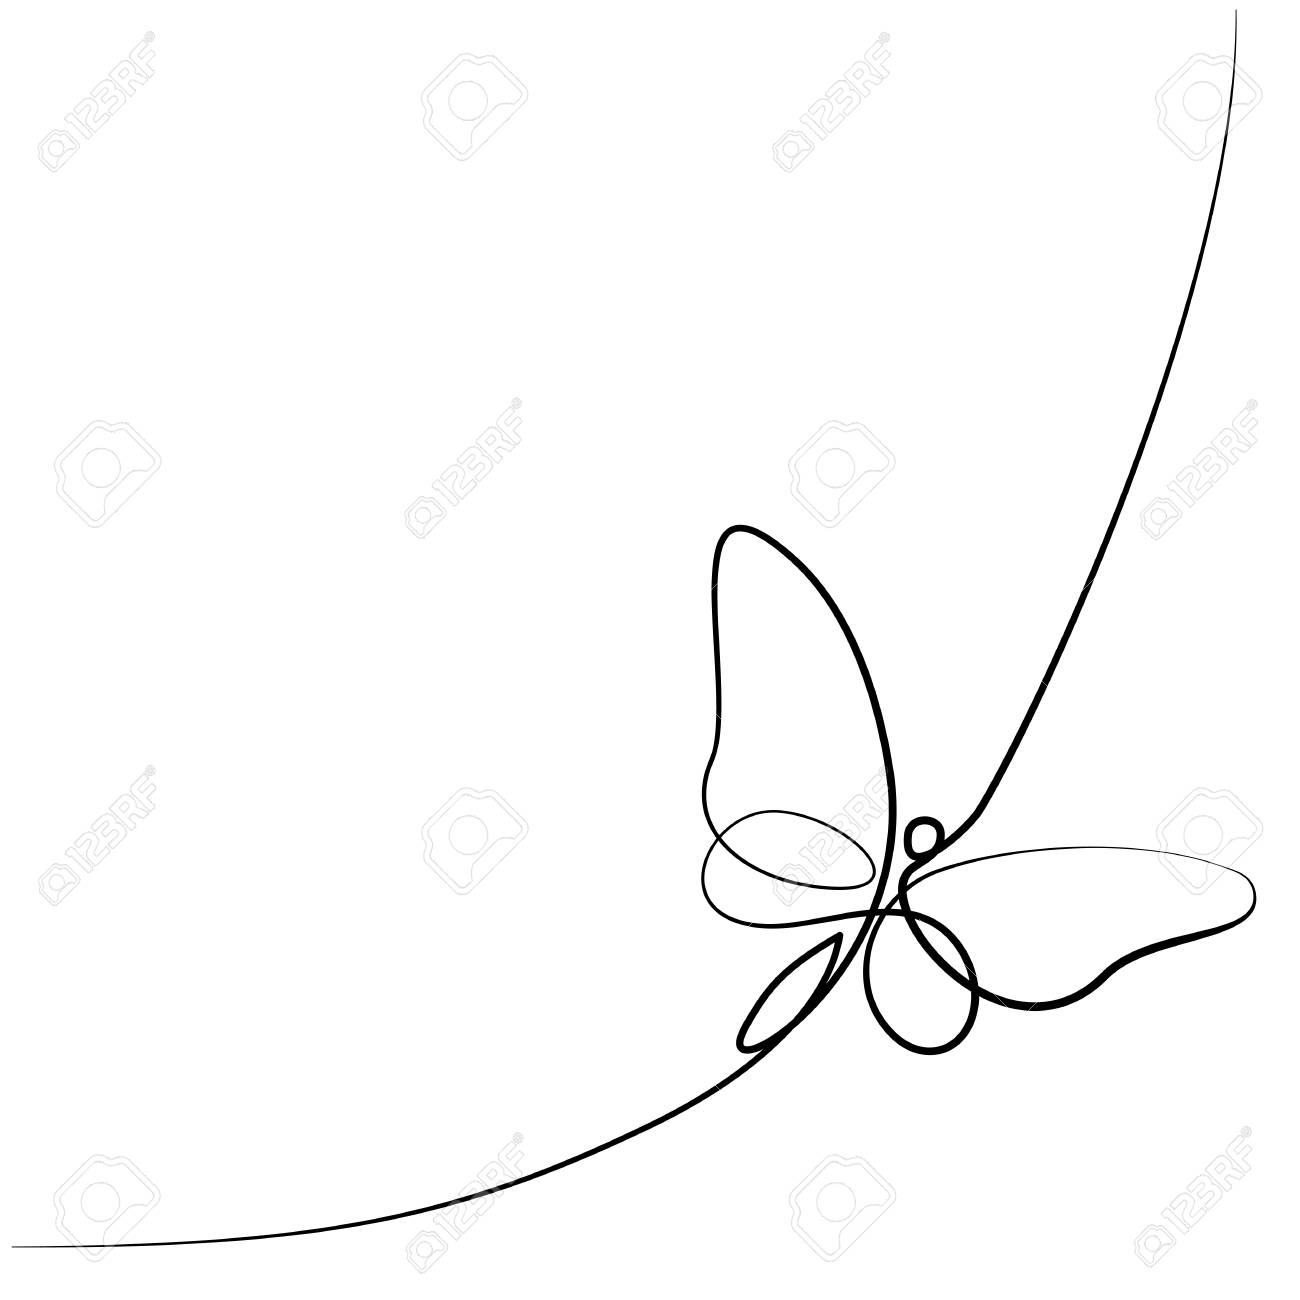 Continuous one line different width drawing. Flying butterfly logo. Black and white vector illustration. Concept for logo, card, banner, poster, flyer - 92070399